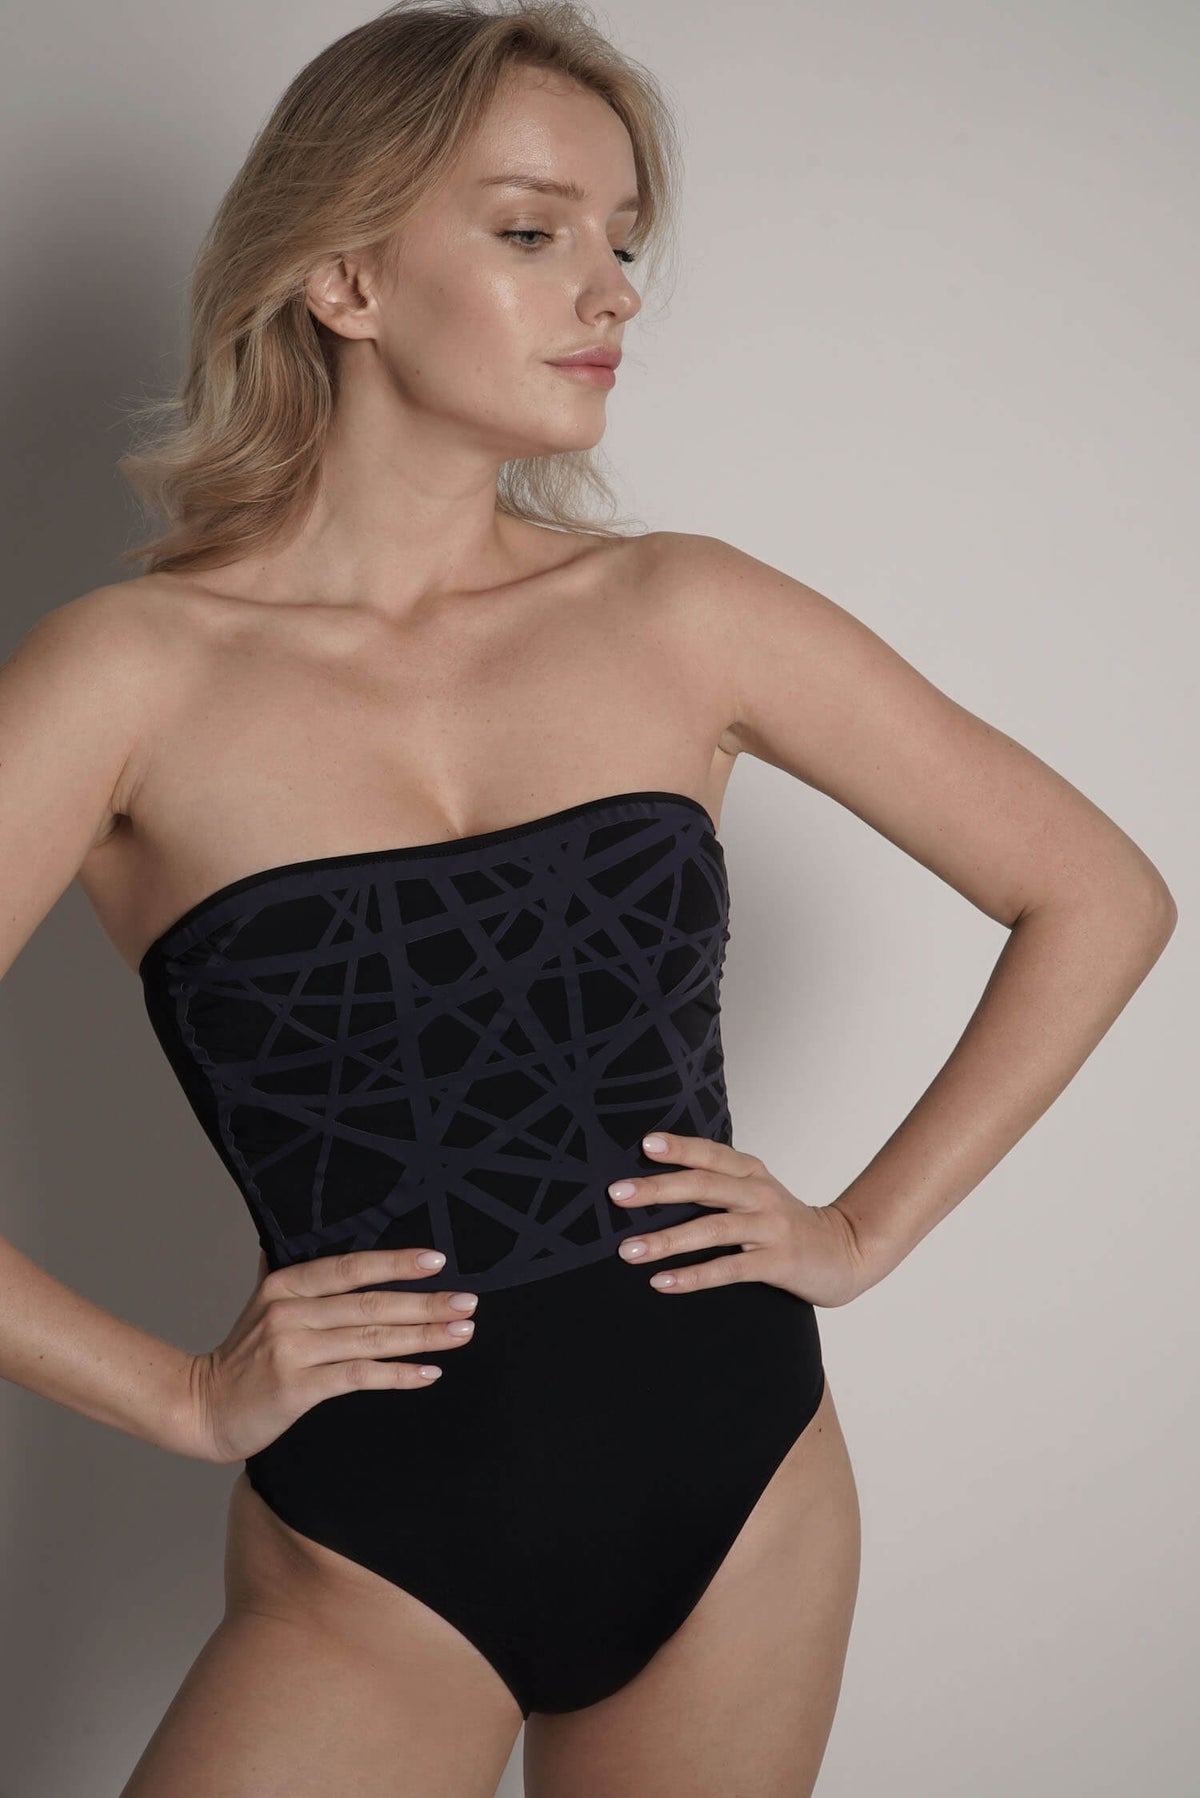 Model shows Angela one piece swimsuit in black with navy laser details.